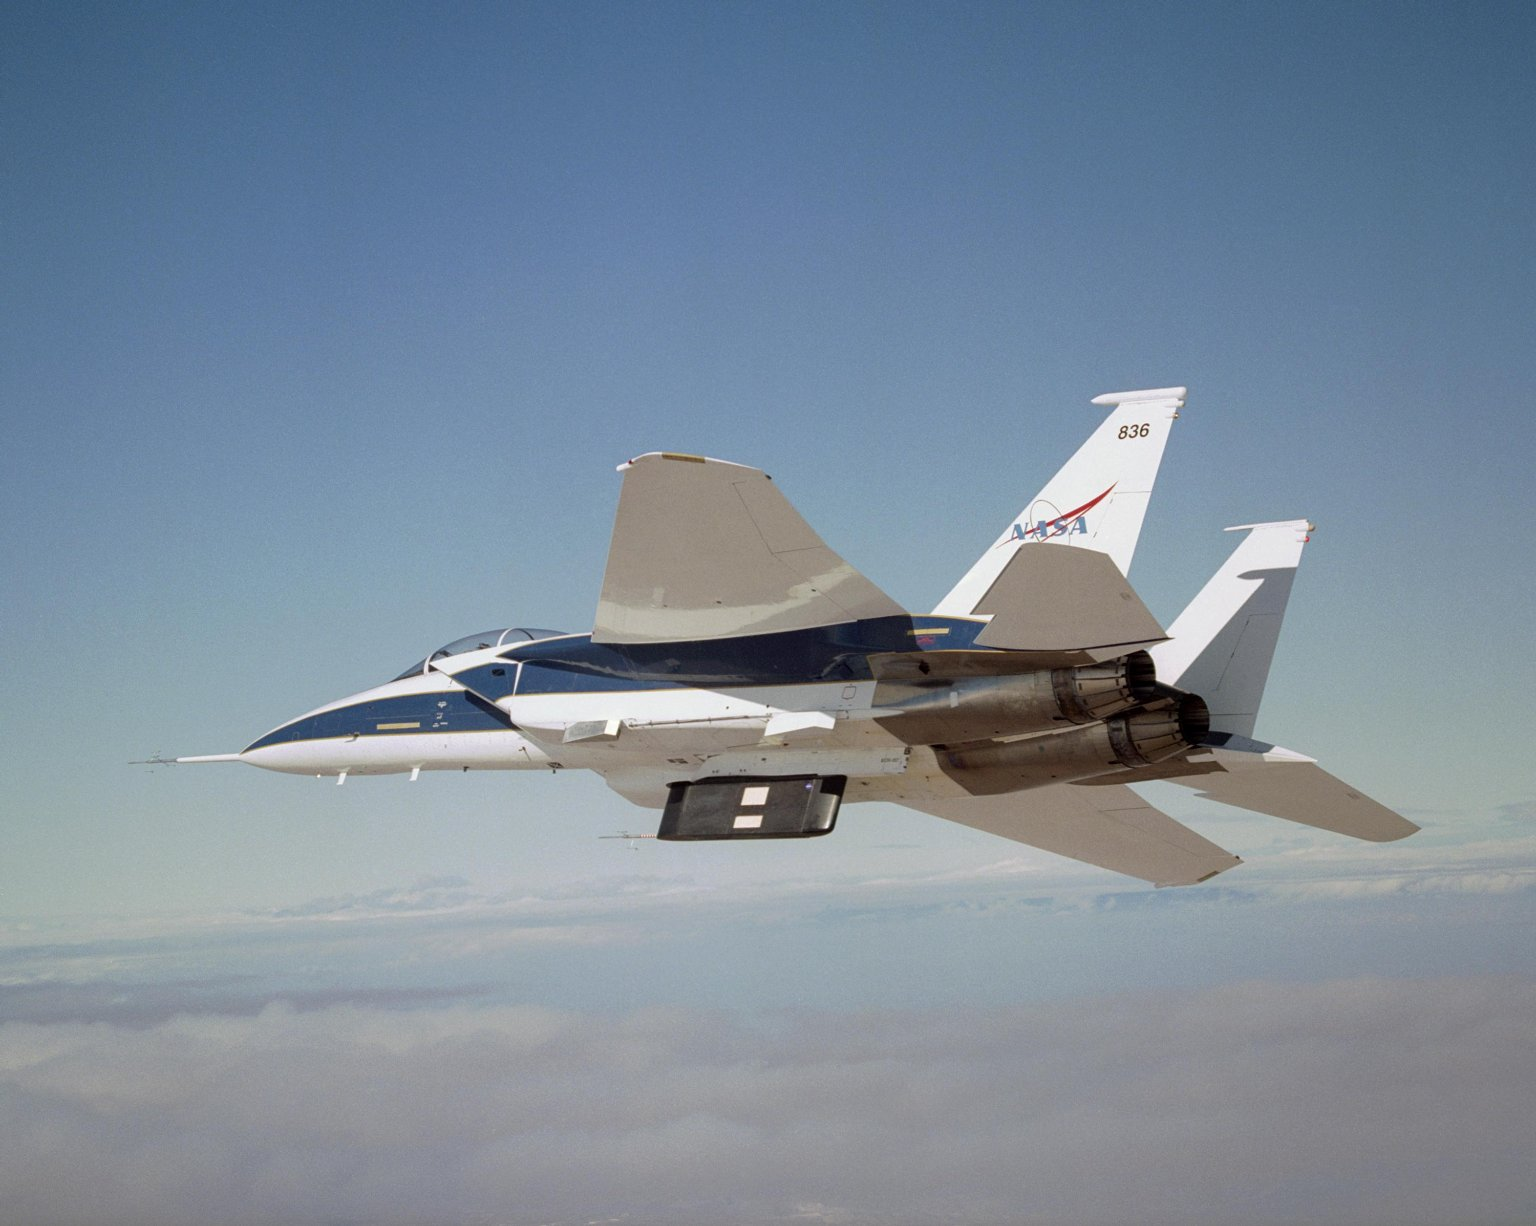 F-15B #836 Research Testbed